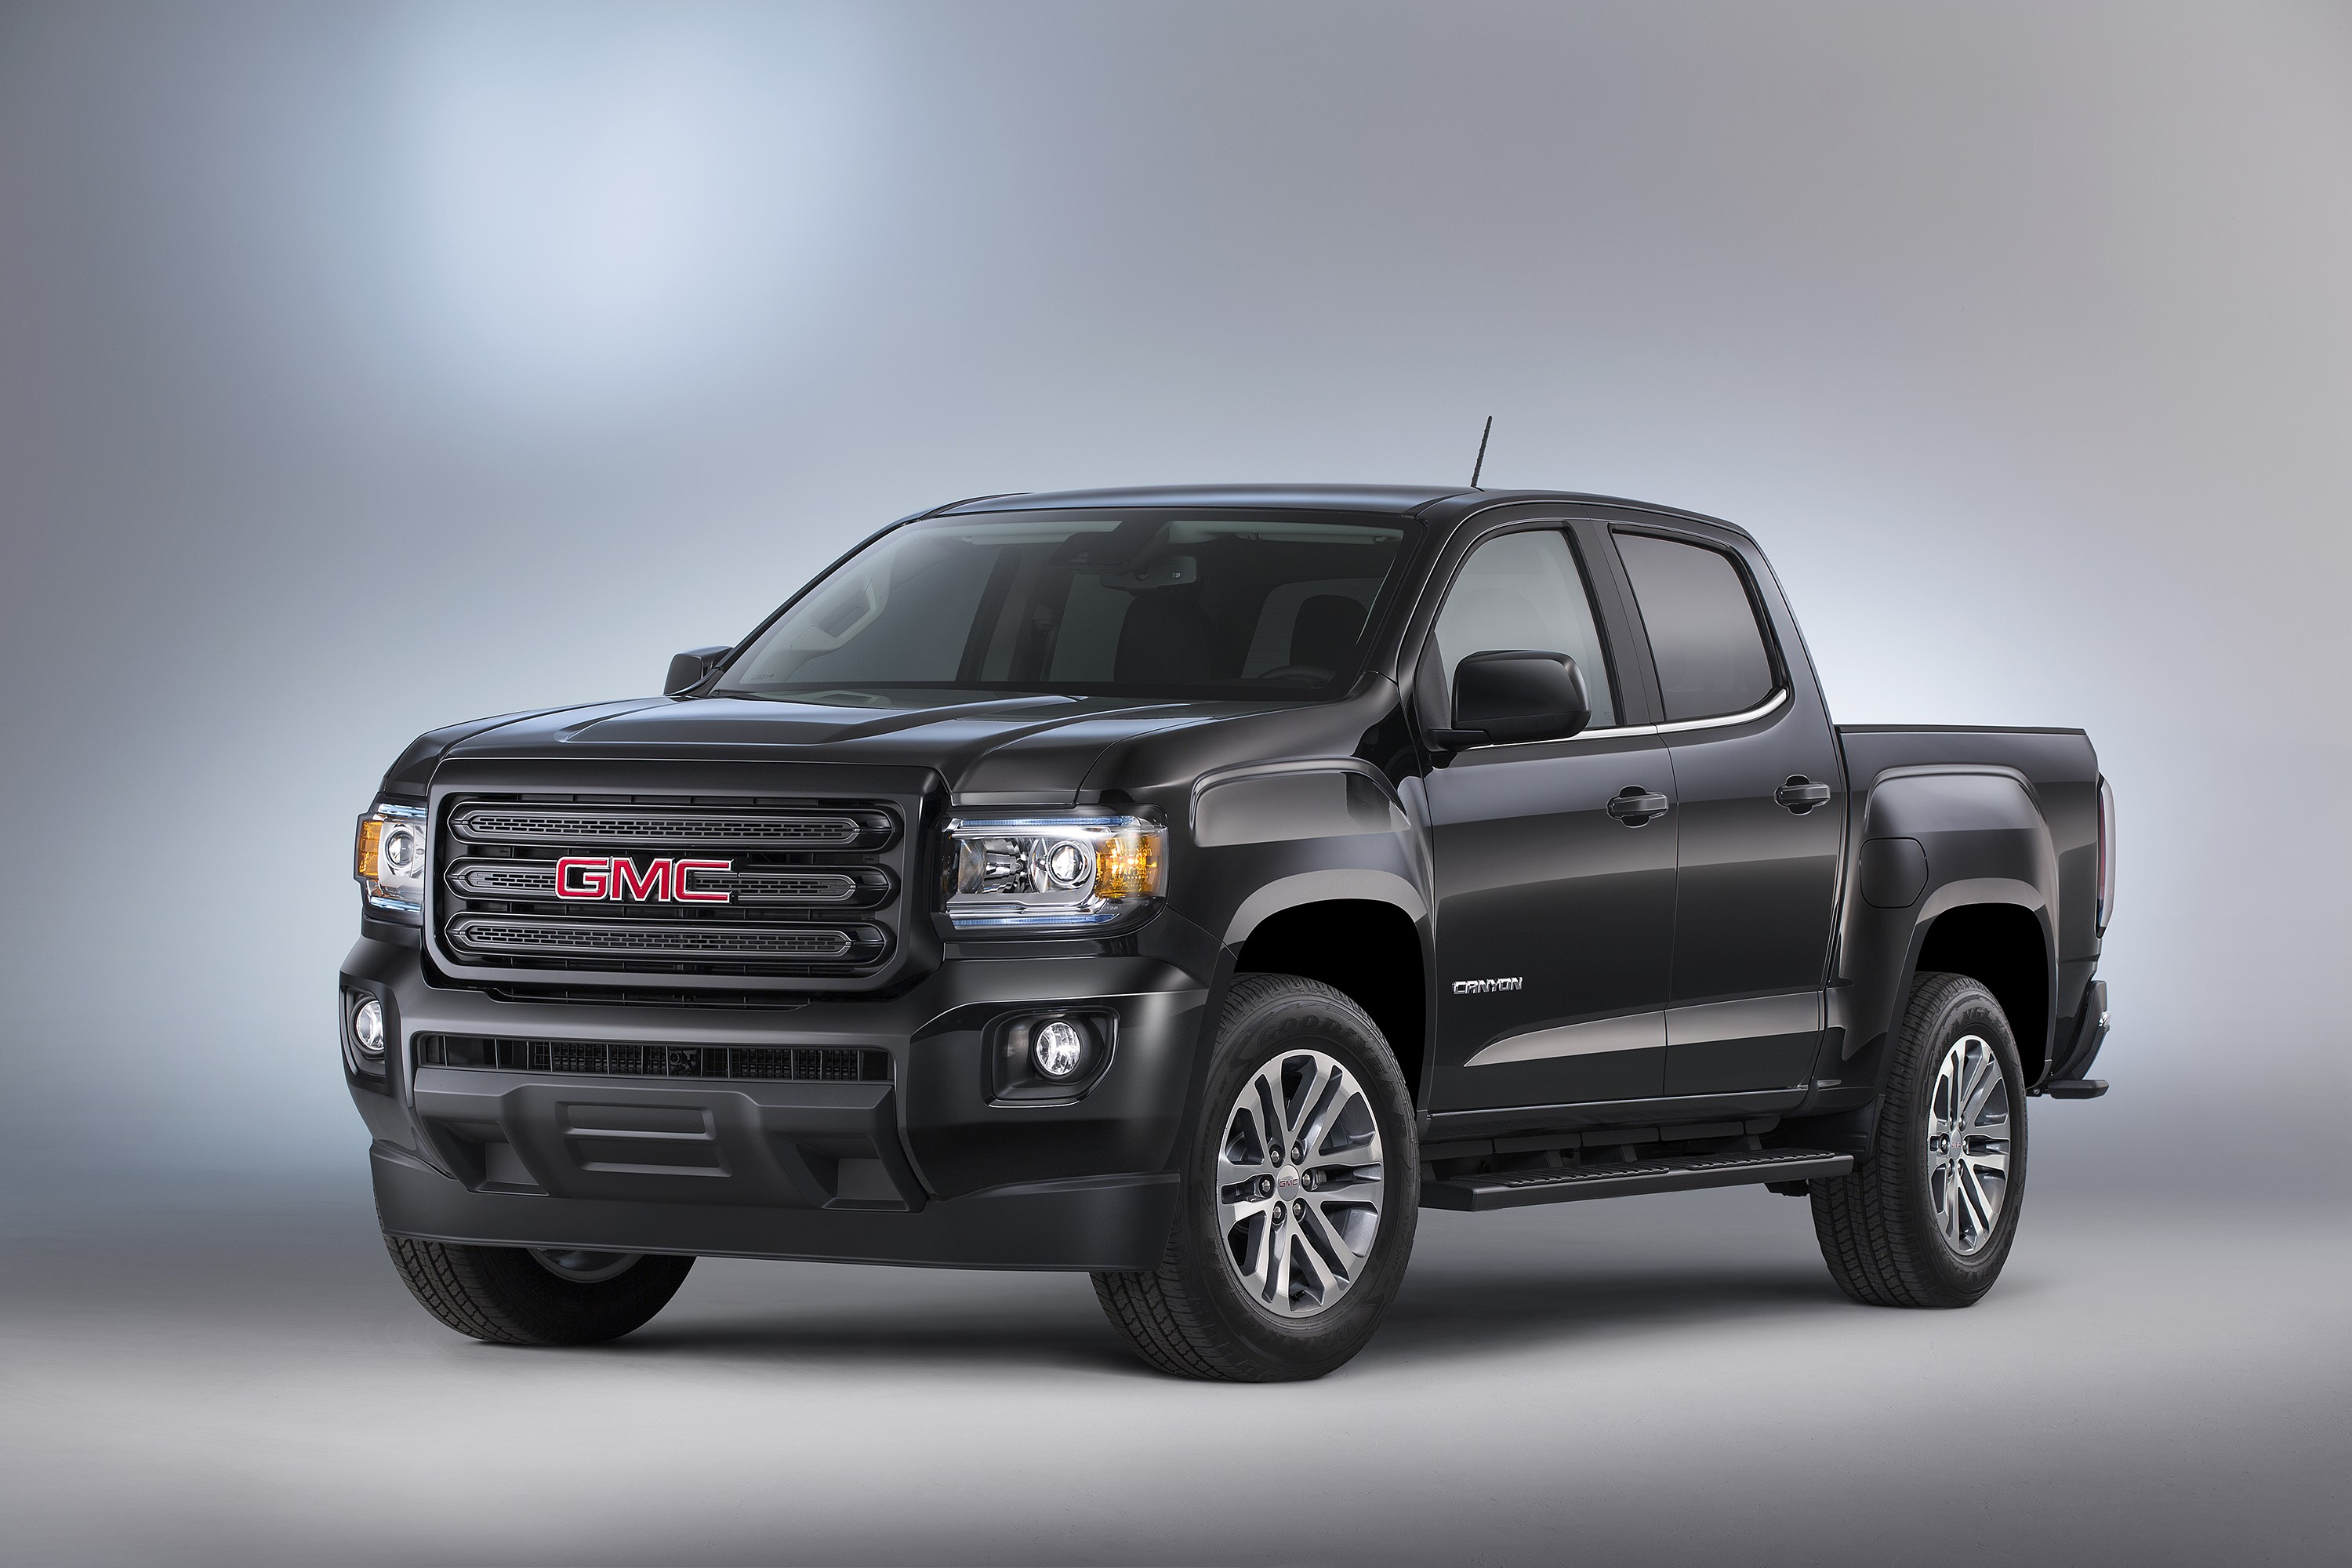 2015 GMC Canyon Nightfall Edition is a Killer-Looking Pickup Truck [Photo Gallery] - autoevolution